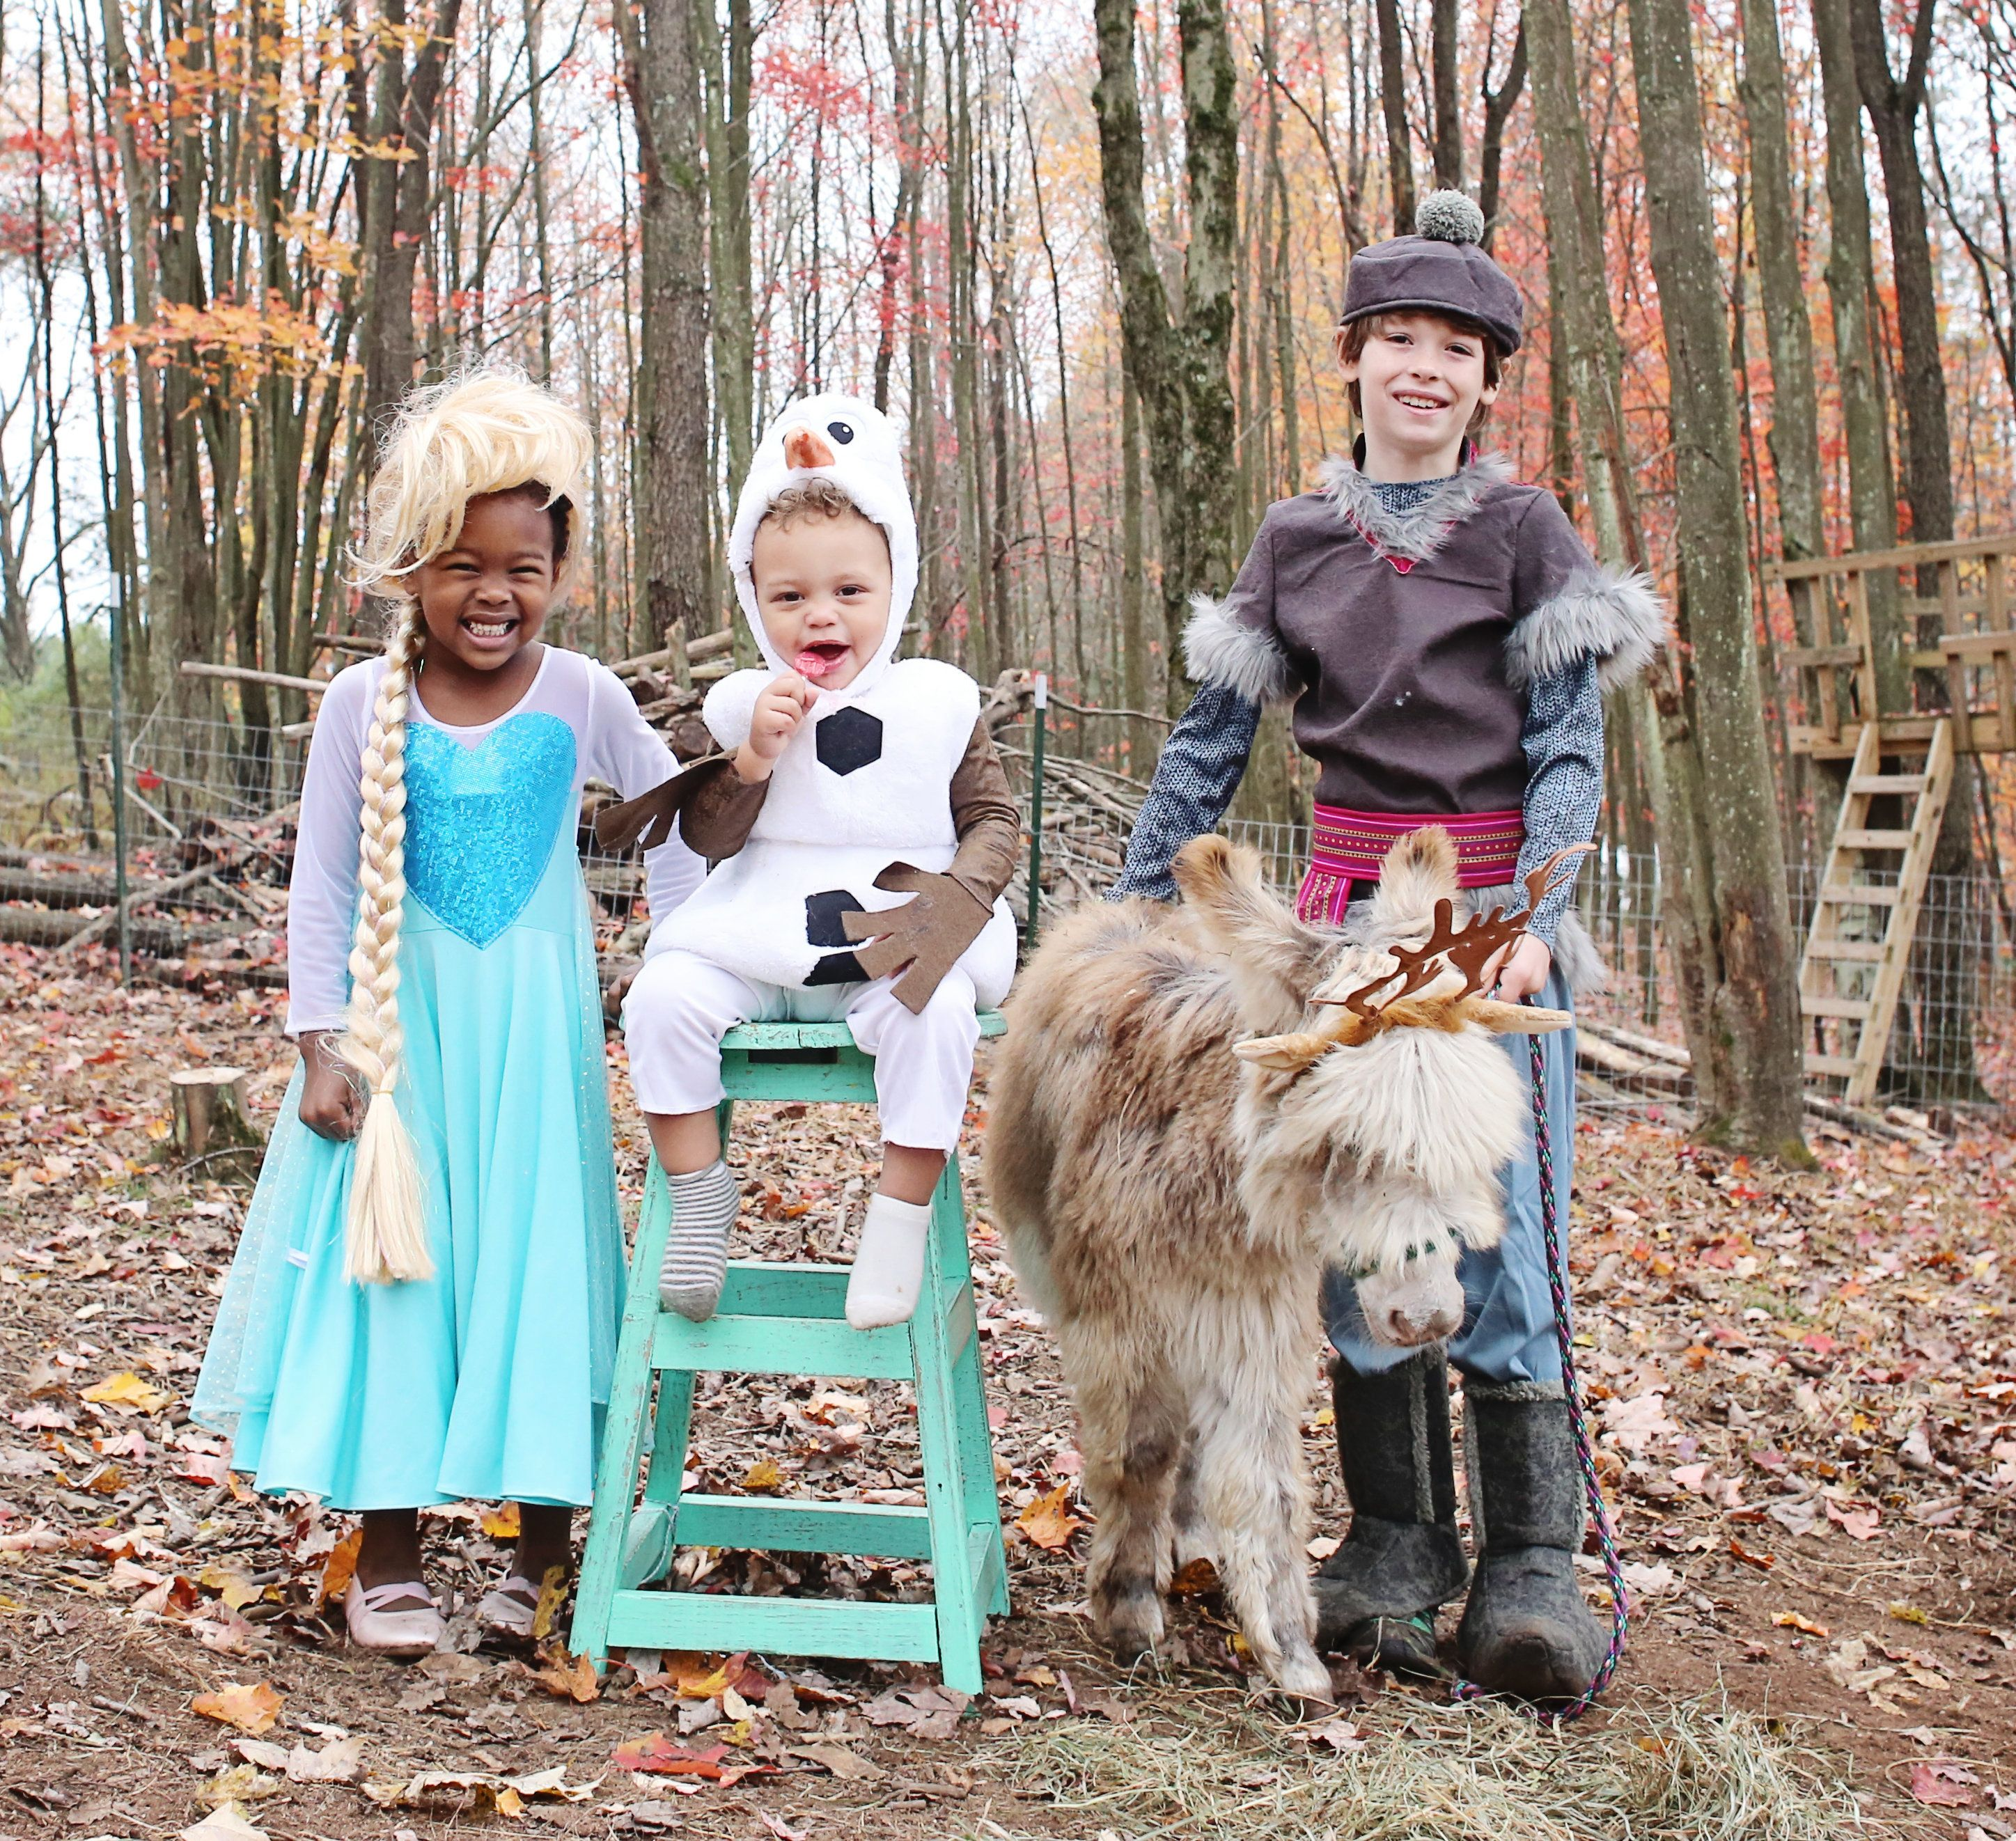 """Bonnice photographs her children's Halloween dress-up adventures with their animal friends for an Instagram series she calls<a href=""""https://www.instagram.com/explore/tags/sweetfluffdressup/"""" target=""""_blank"""">#SweetFluffDressUp</a>."""